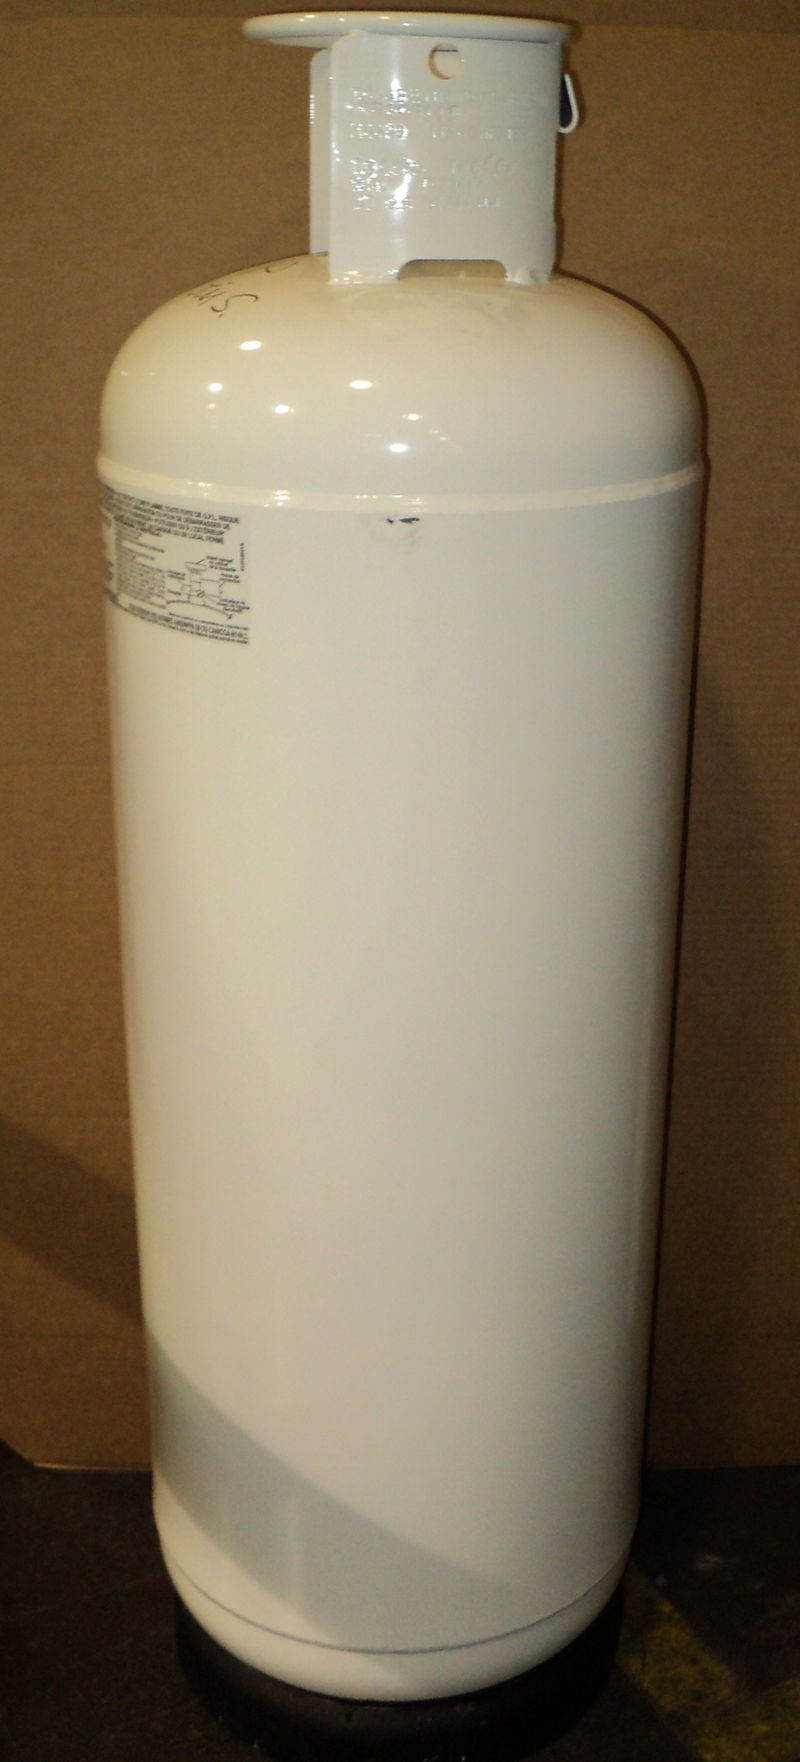 Manchester Tank Equipment Company Recalls Propane Cylinders Due To